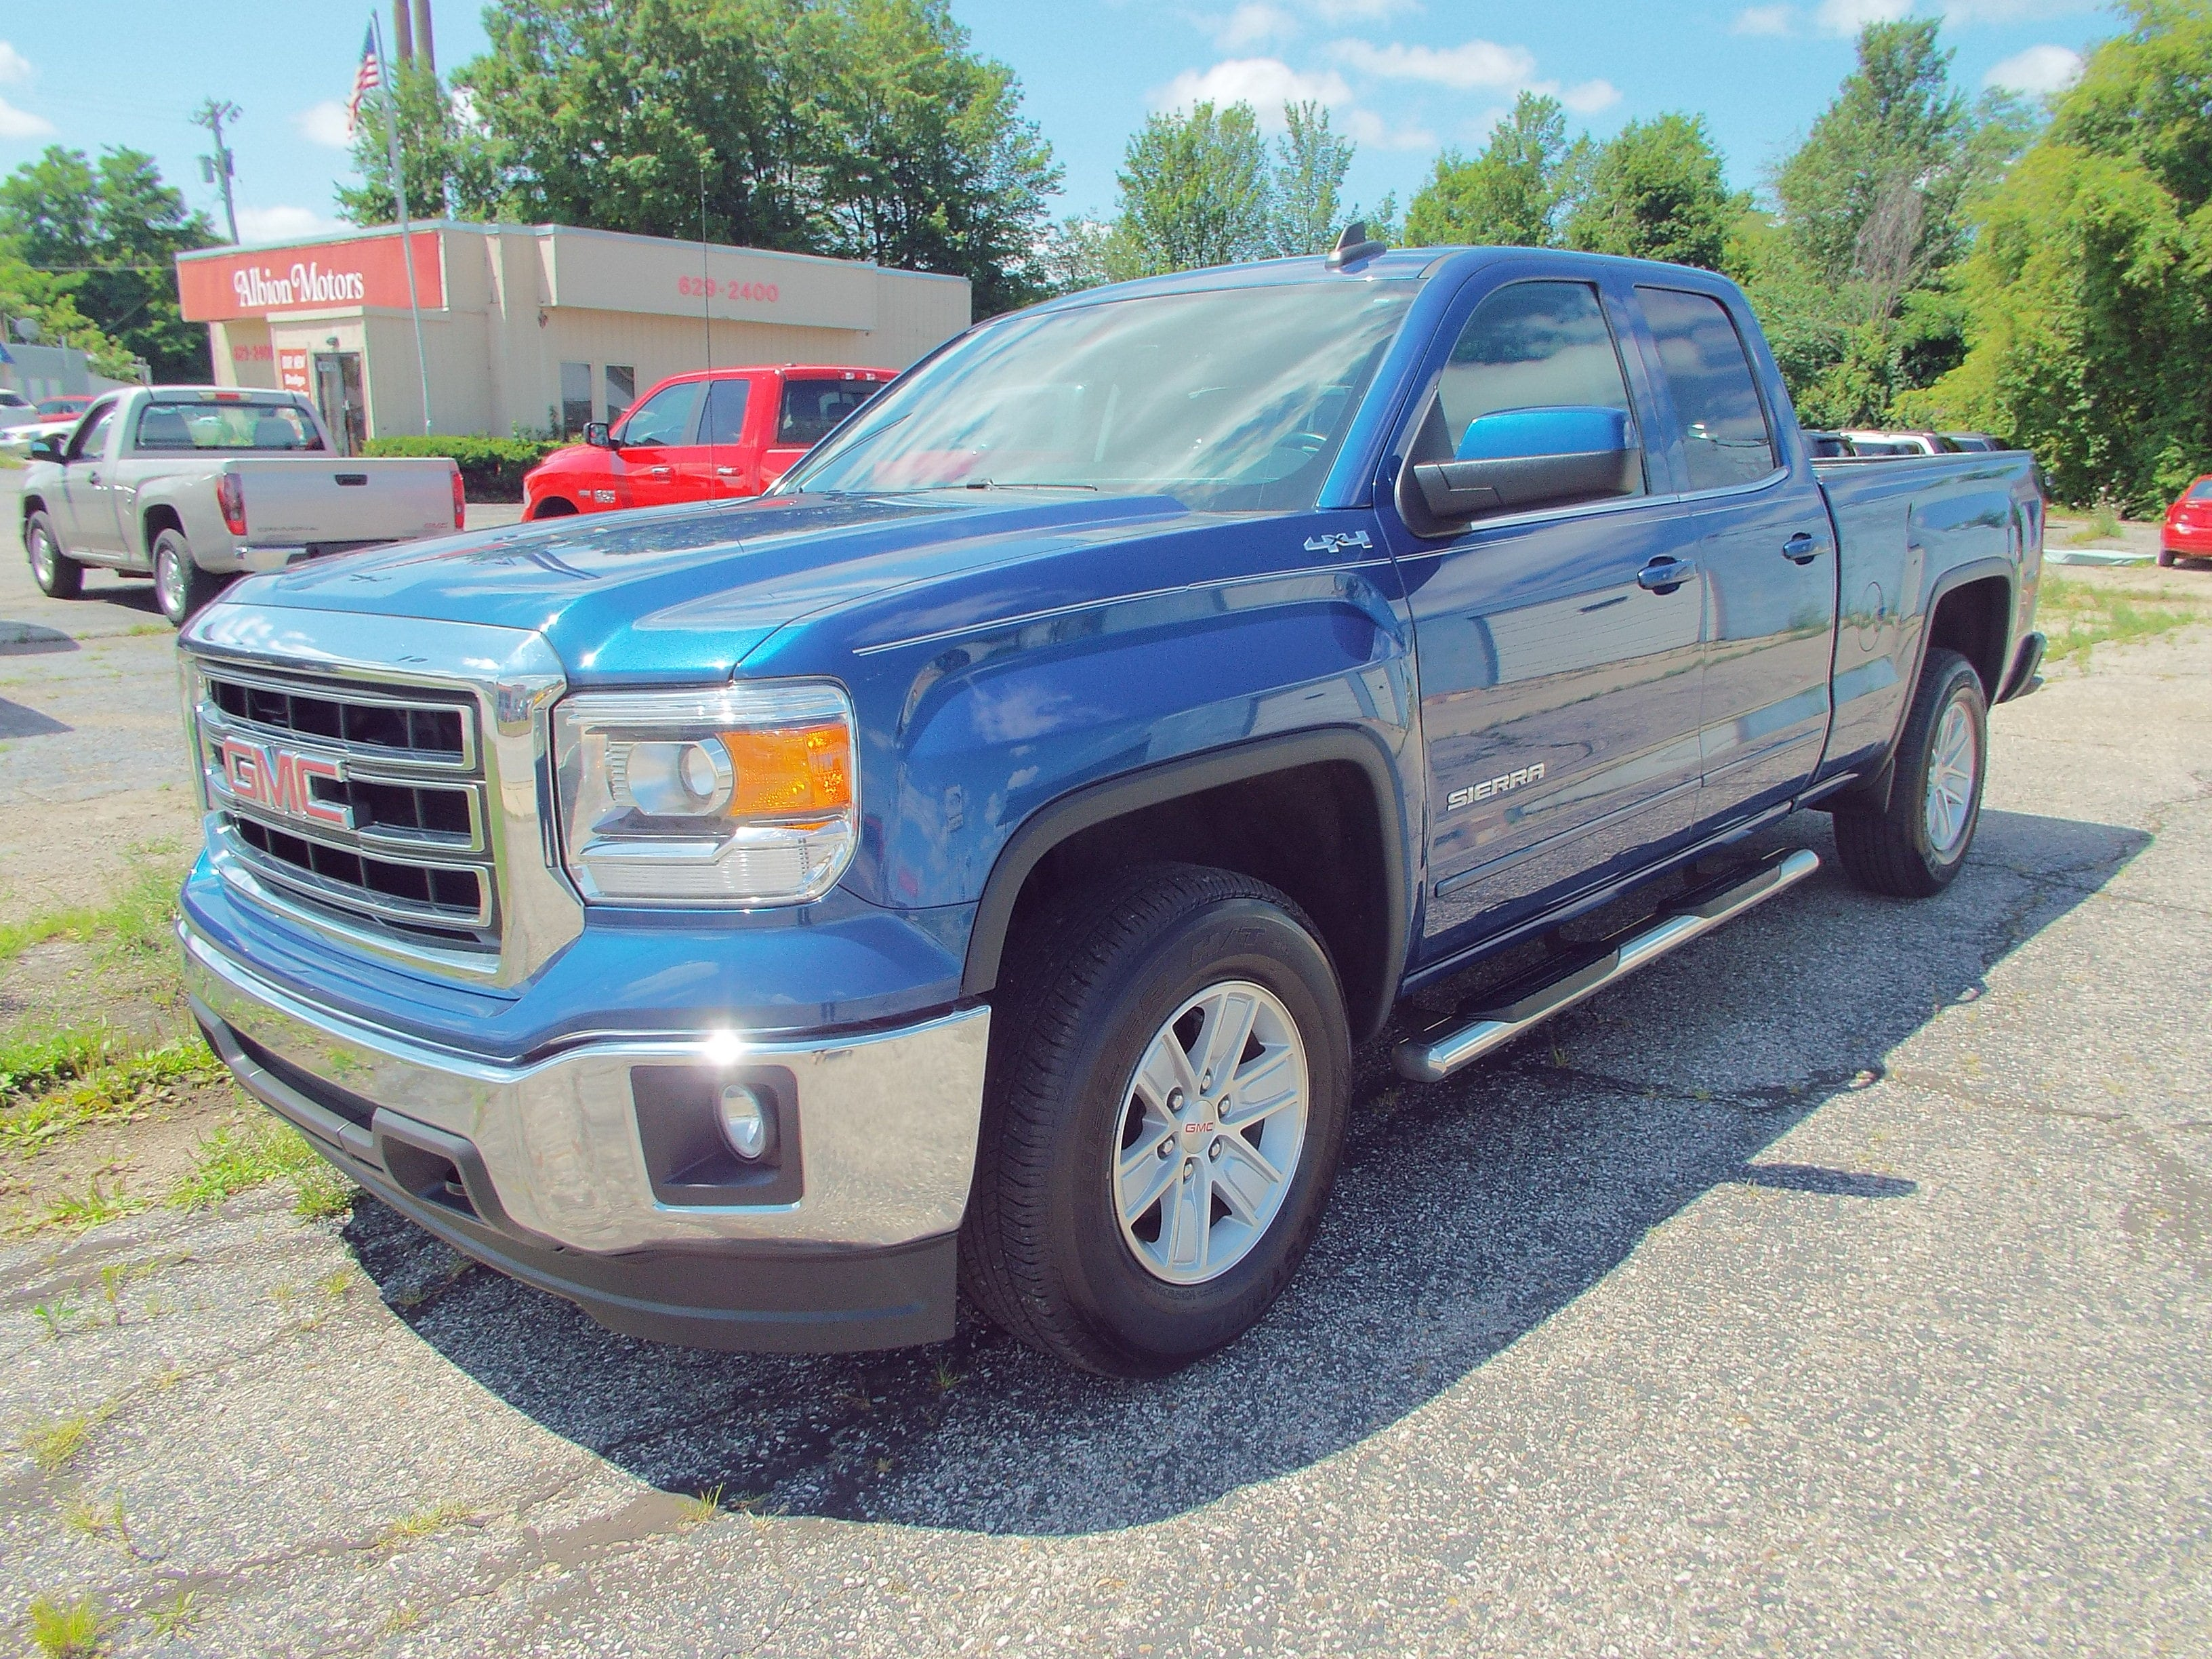 2015 GMC Sierra 1500 SLE The 2015 Double Cab GMC 1500 4x4 SLE is an eye-catching truck with enough